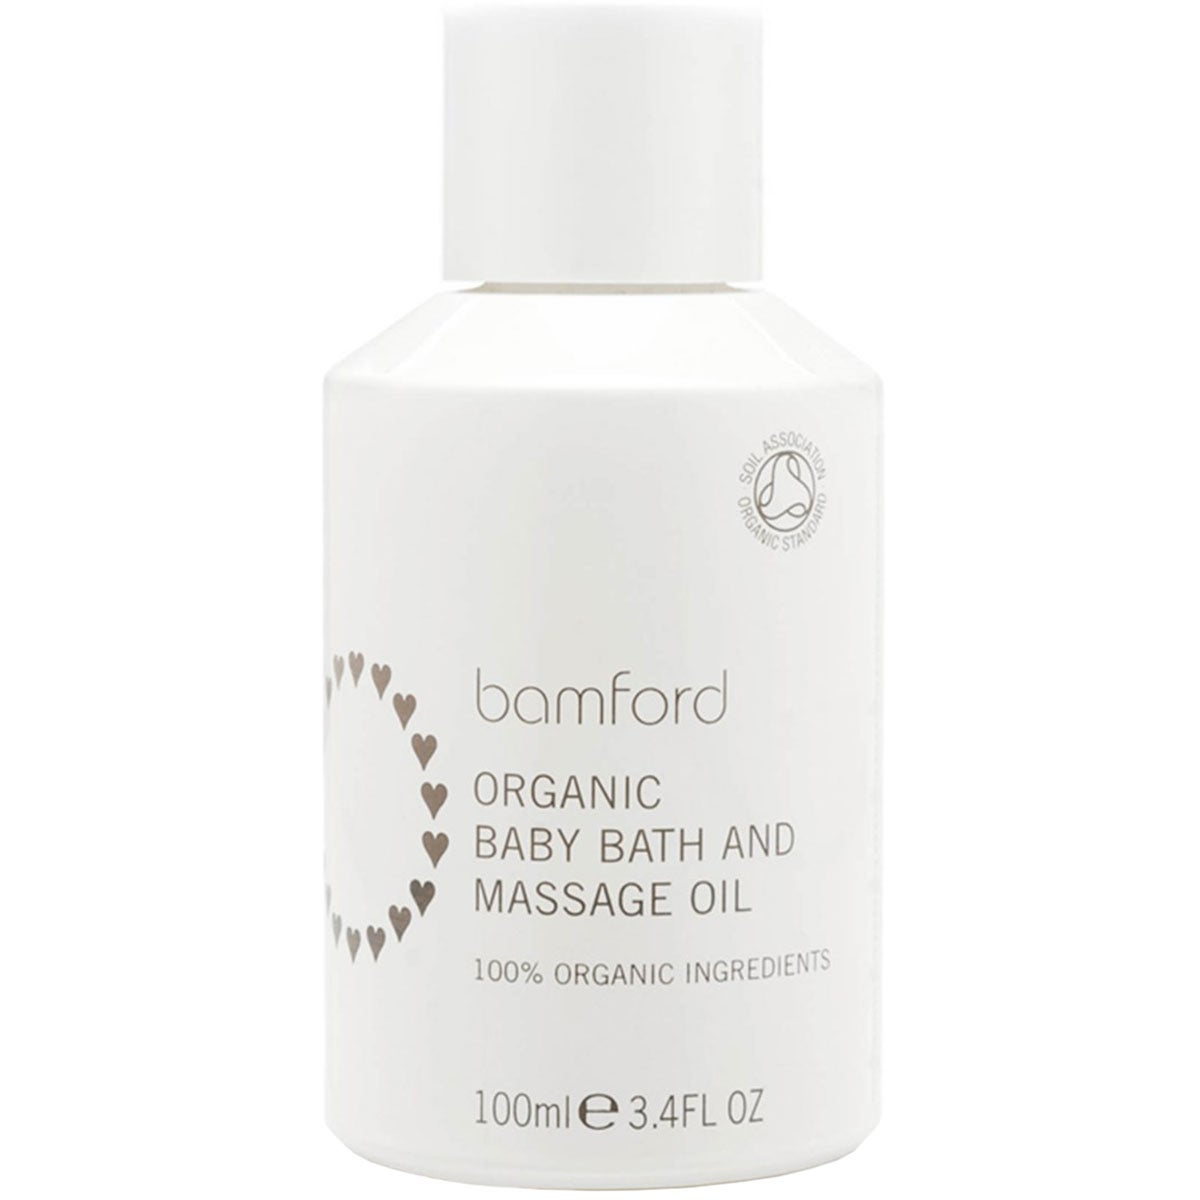 Bamford ORGANIC BABY BATH & MASSAGE OIL